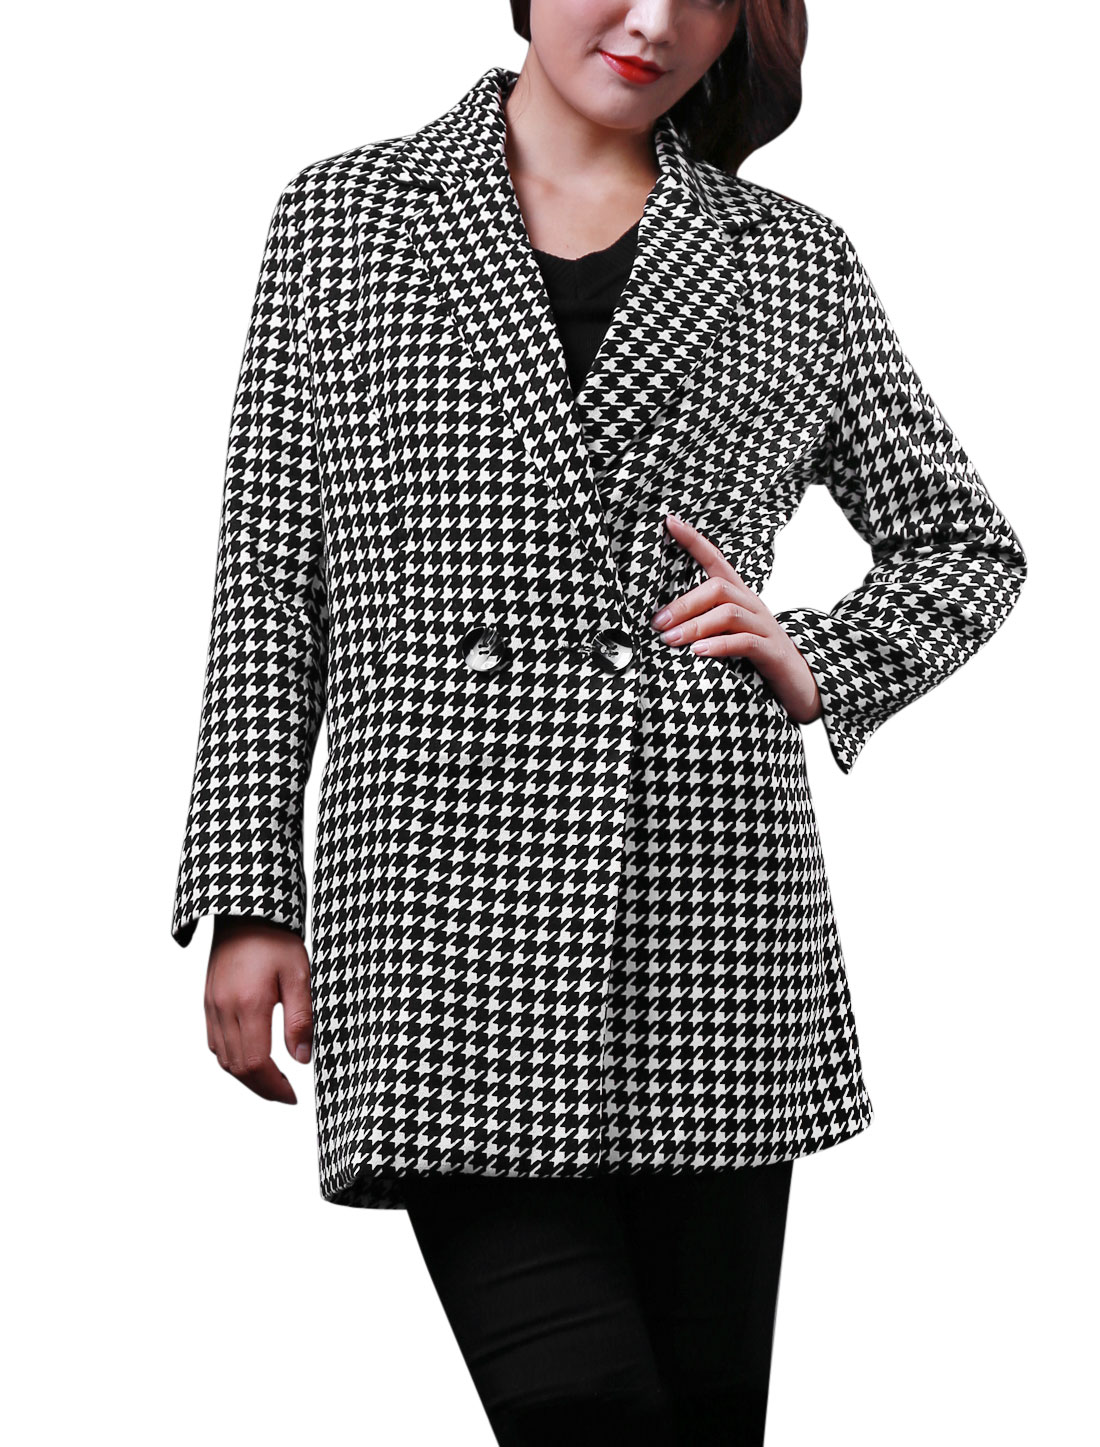 Lady Houndstooth Pattern Two Button Closure Casual Tunic Blazer Black White M